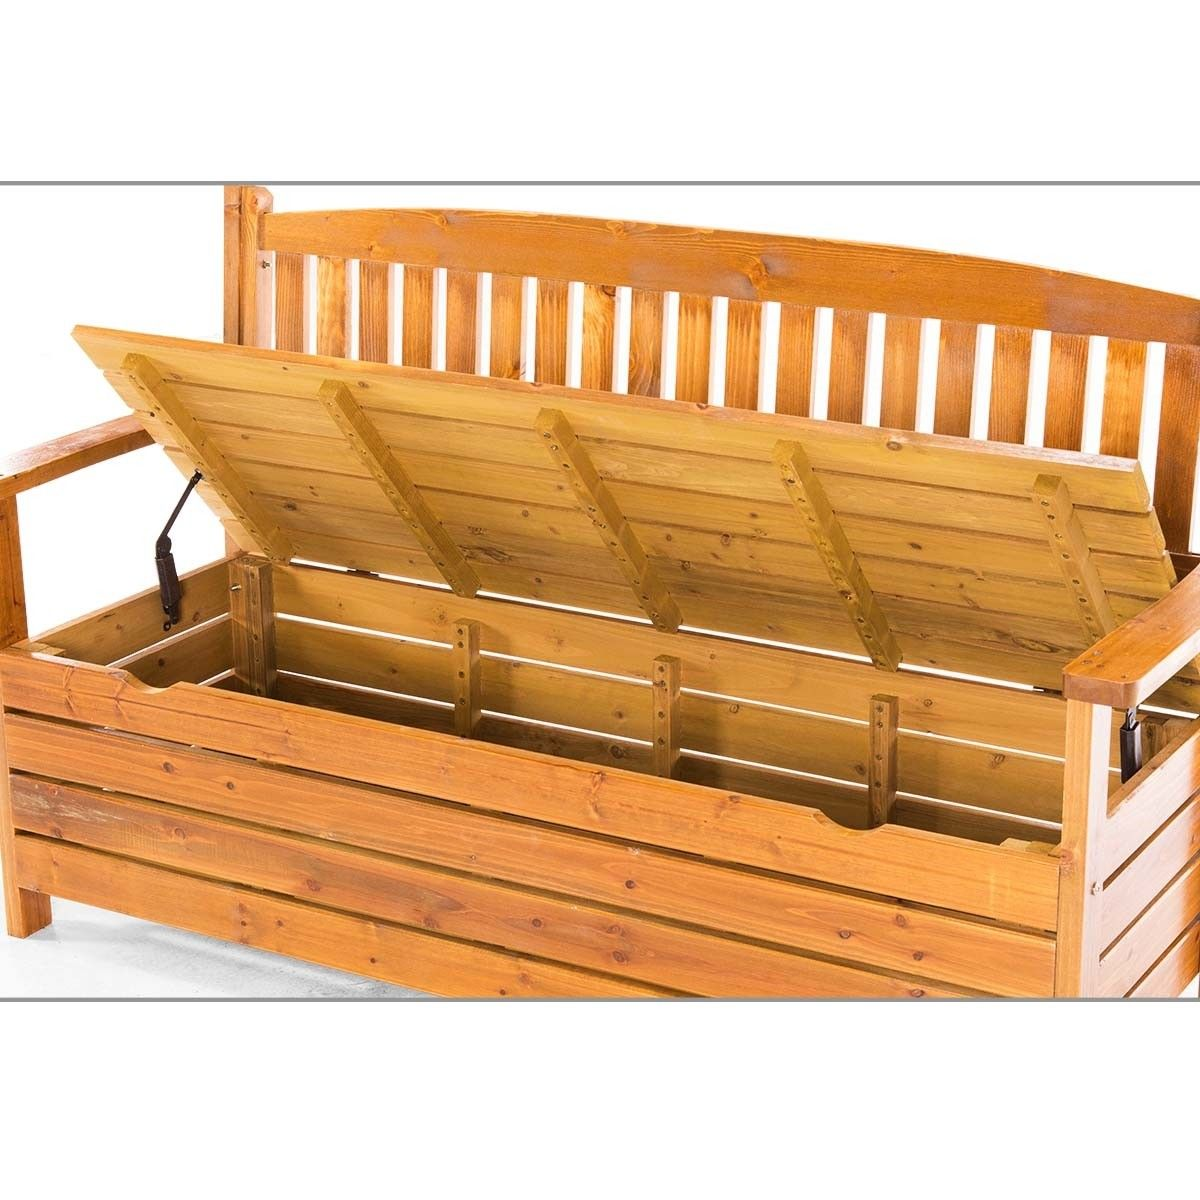 Stupendous 1 5M Wooden Storage Bench Garden Chest Inzonedesignstudio Interior Chair Design Inzonedesignstudiocom